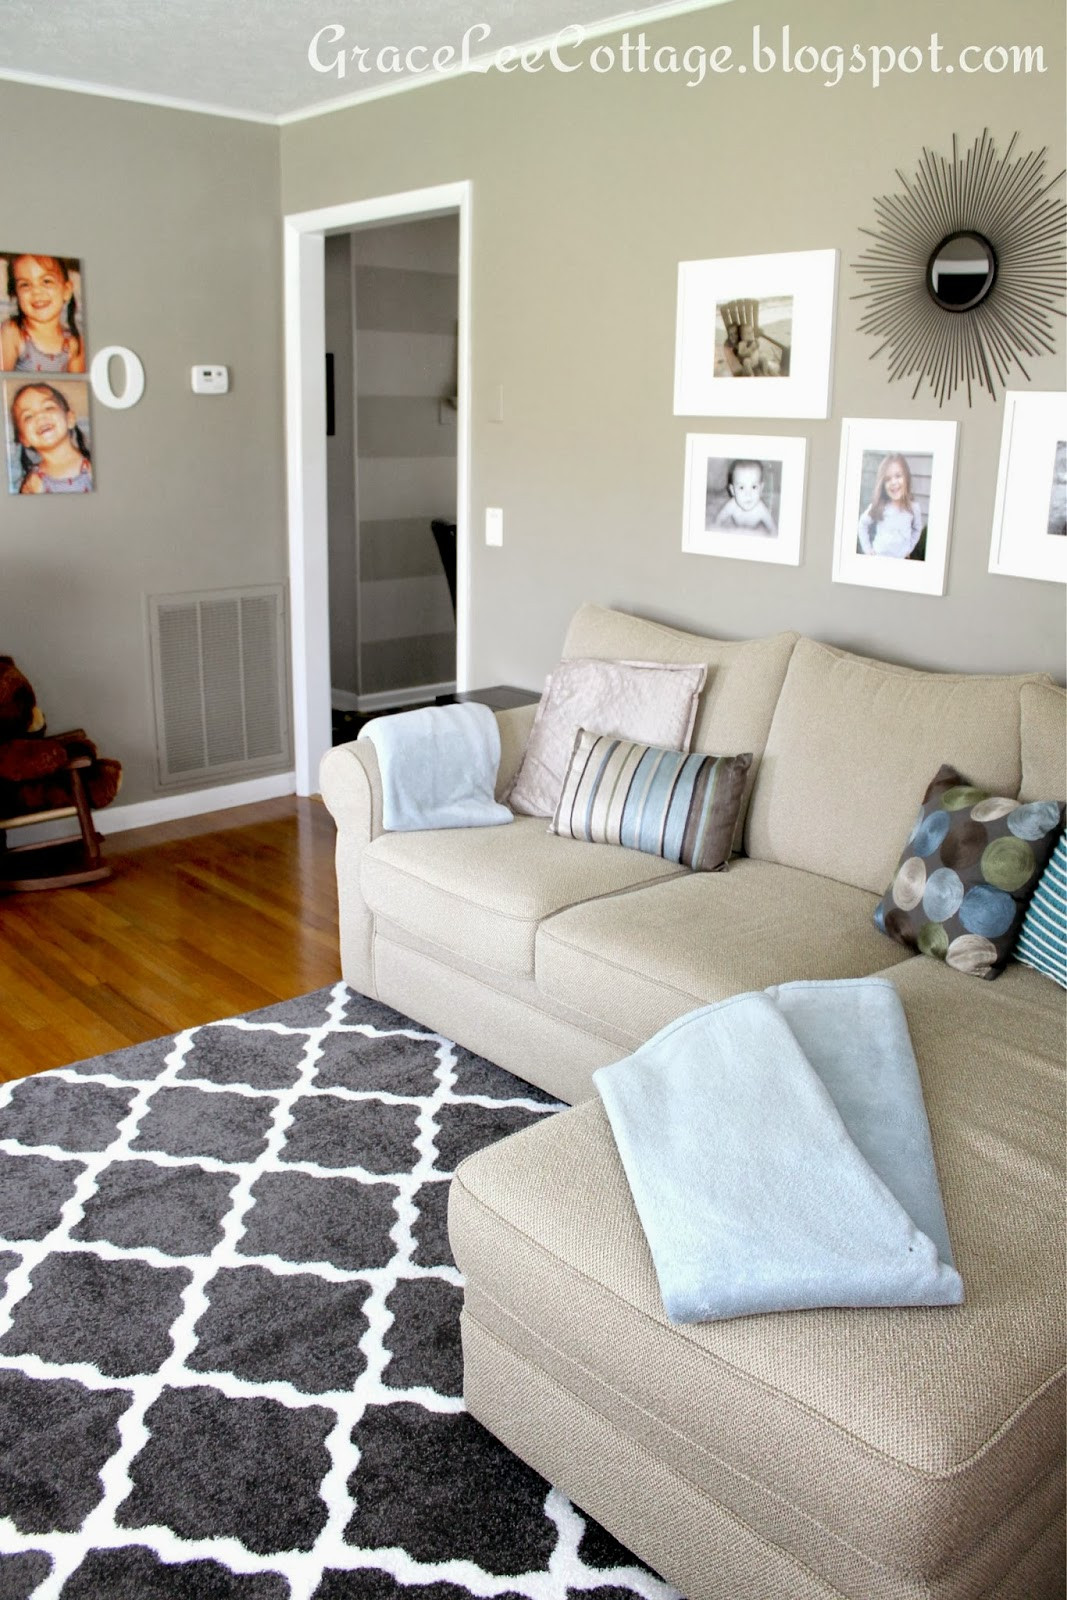 Best ideas about Family Room Rugs . Save or Pin Grace Lee Cottage New living room rug Now.